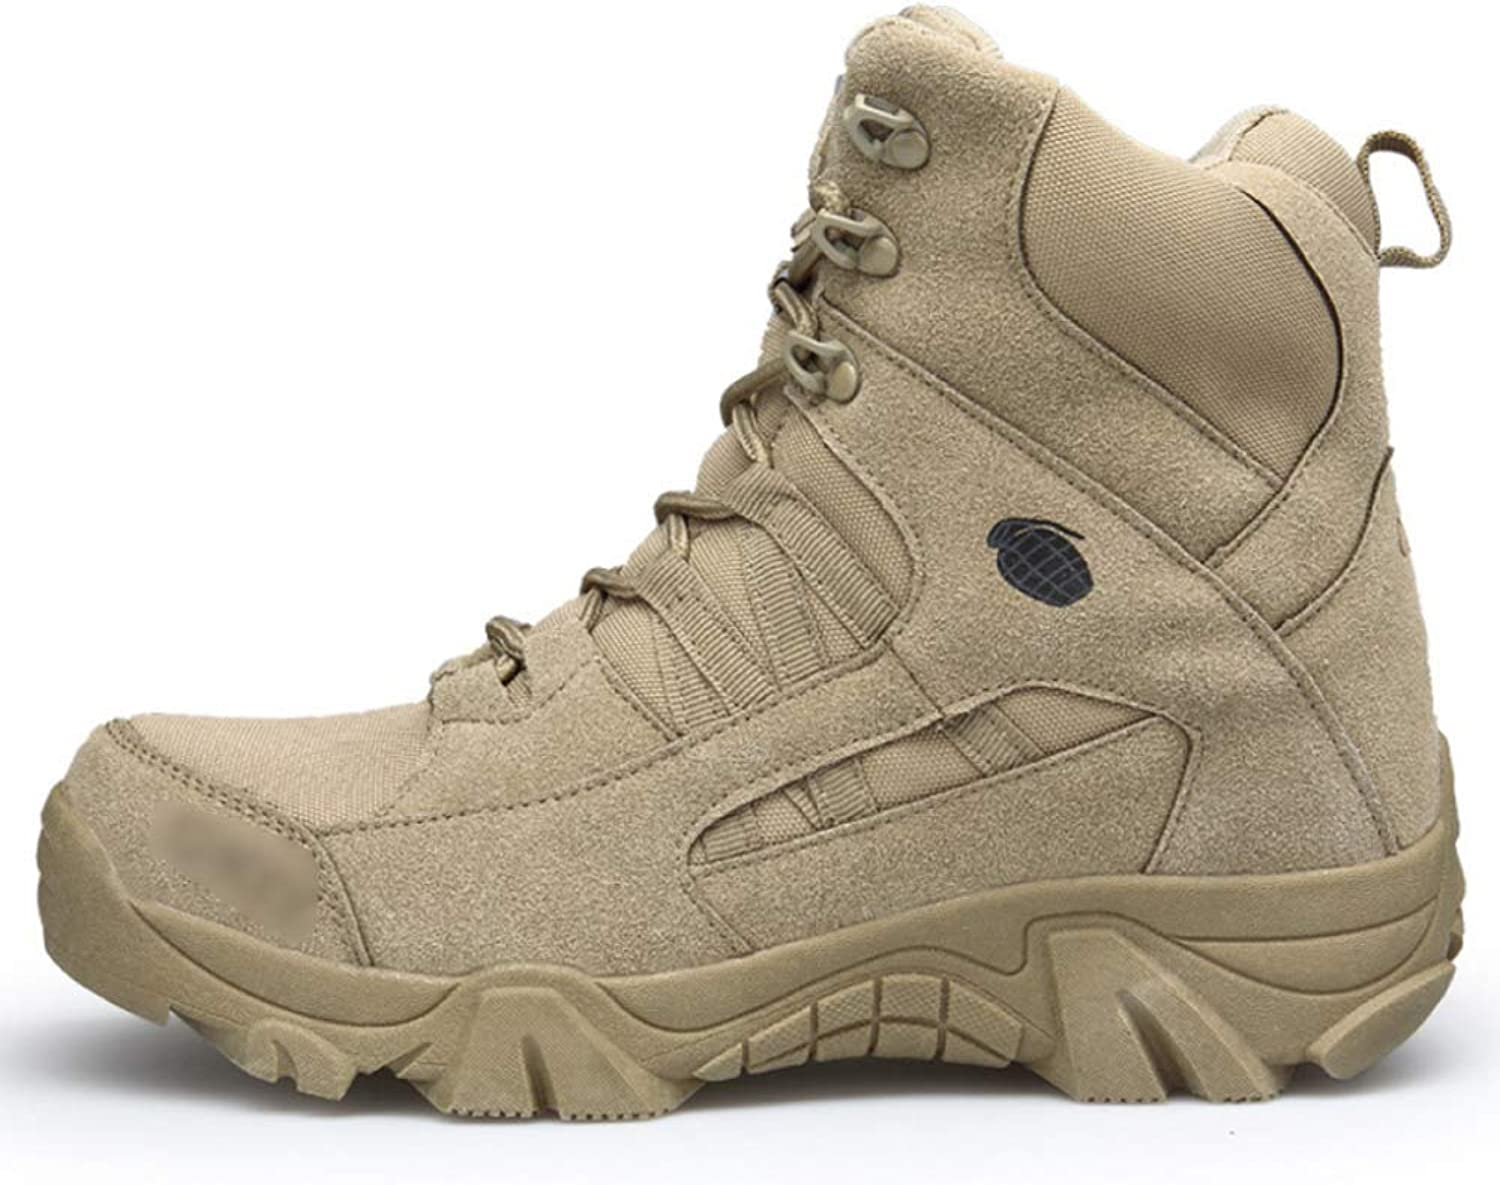 Mens Army Boots Special Forces Desert Tactics Boot Outdoor Mountaineering Combat shoes Assault Trained Armed Footwear